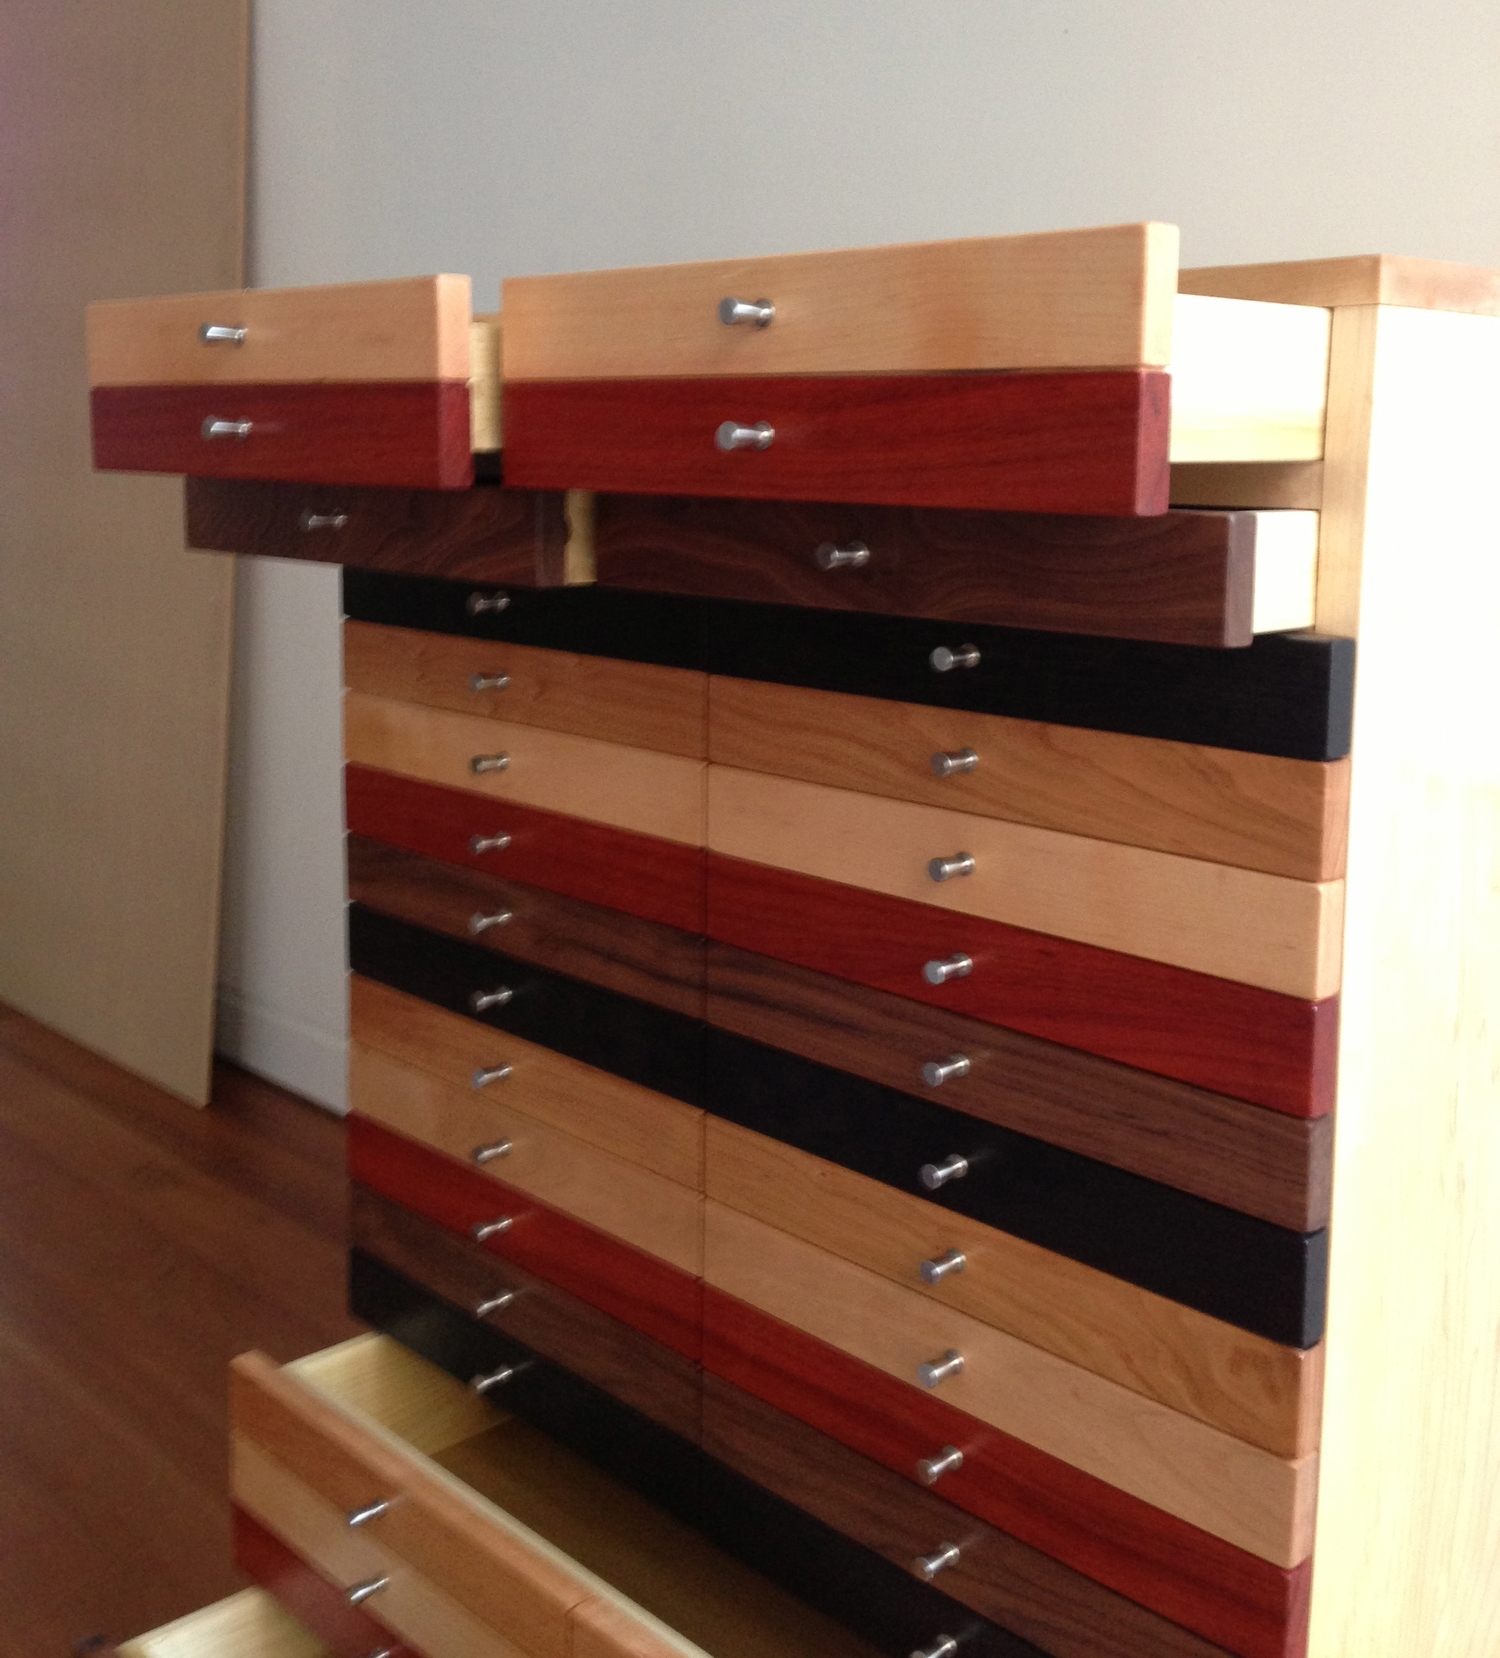 At first glance, this cabinet appears to have forty-twosmall drawers, but it has six drawers of varying sizes and a cabinet.